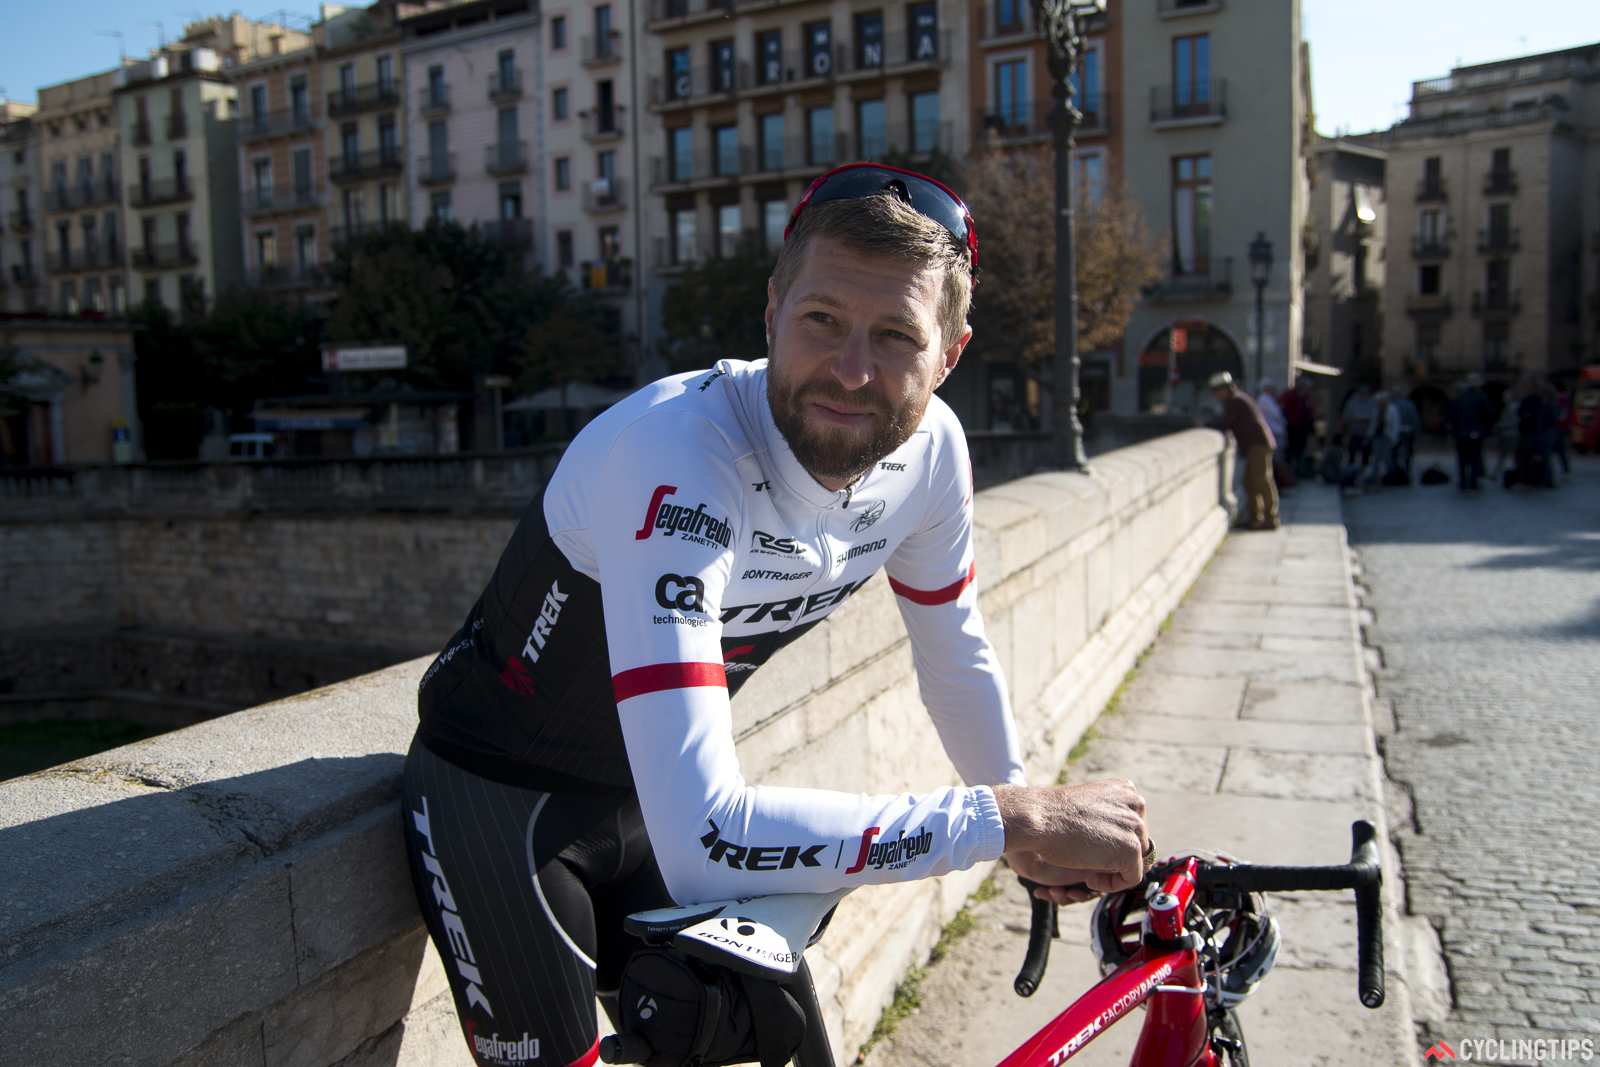 Hesjedal before one of his last training rides in Girona. His apartment is one of those visible behind him, to the left of the Girona sign.